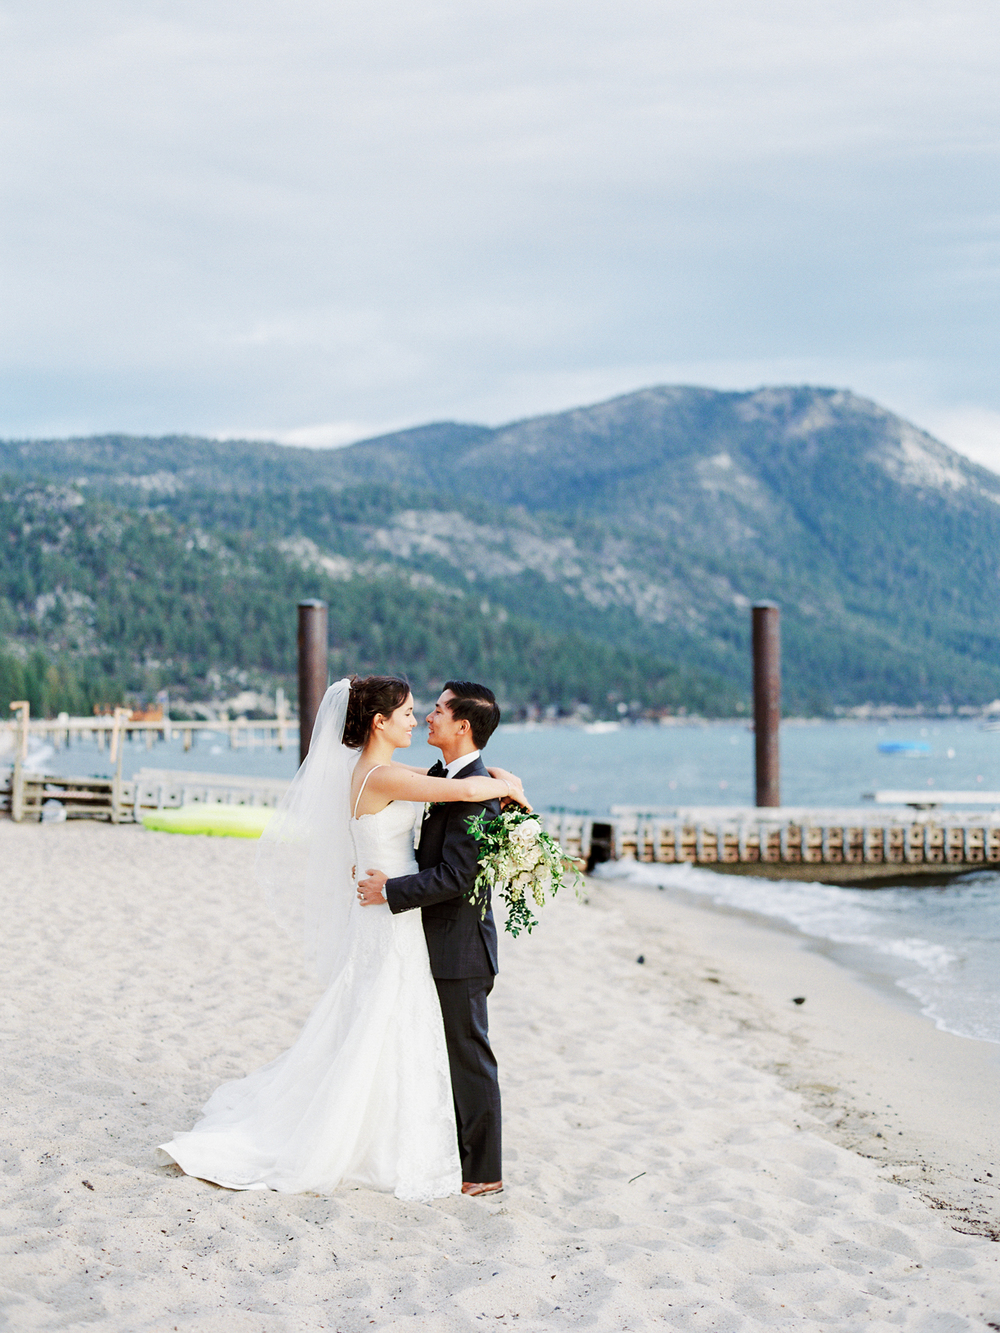 Lake tahoe wedding photographer at Hyatt Regency Lake Tahoe Resort